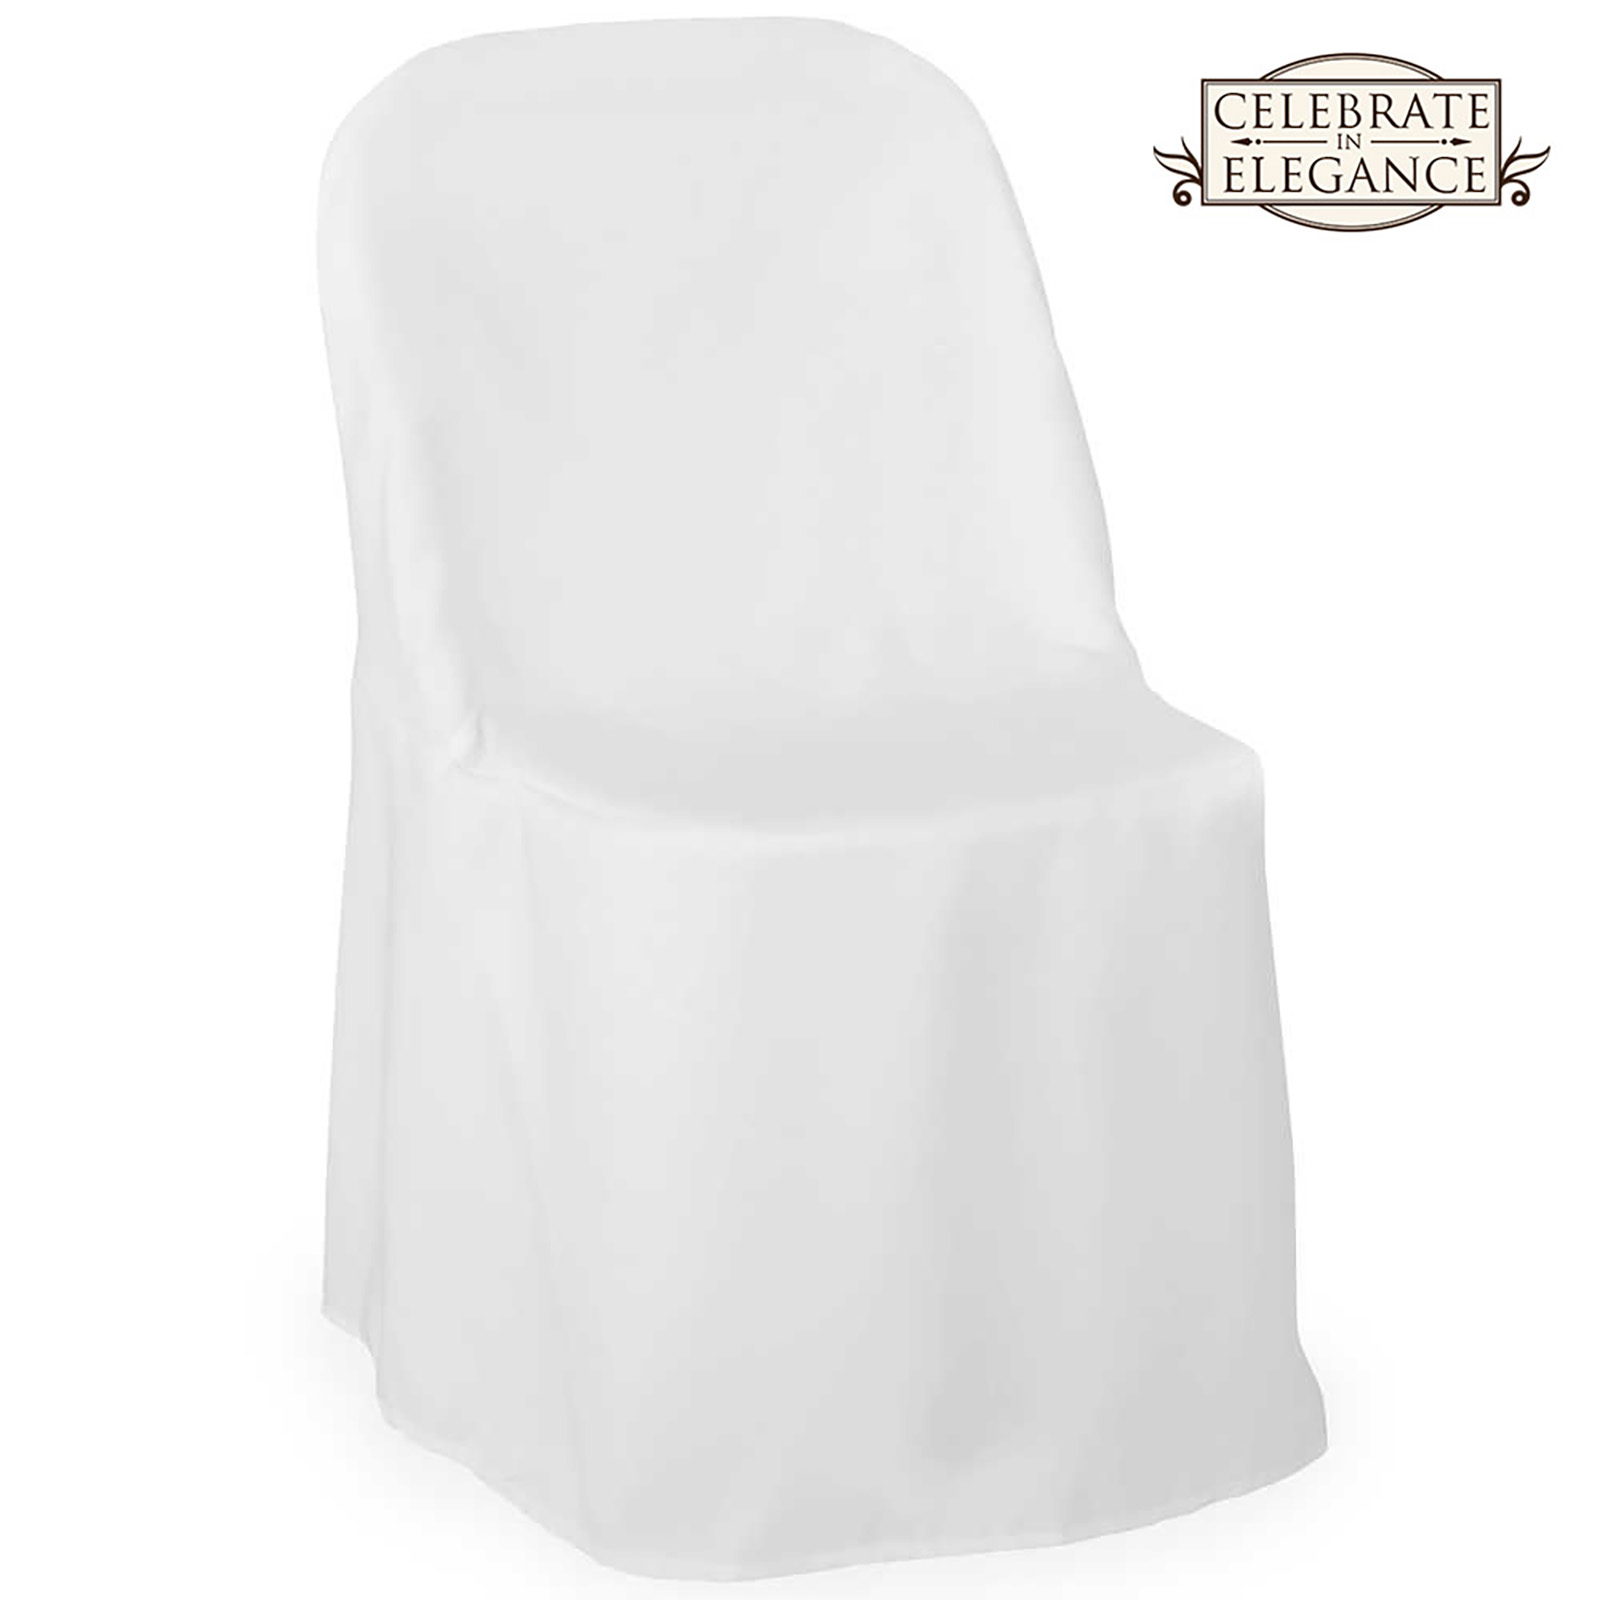 10-Wedding-Party-Folding-Chair-Covers-Polyester-Cloth-  sc 1 st  eBay & 10 Wedding/Party Folding Chair Covers - Polyester Cloth - Multiple ...